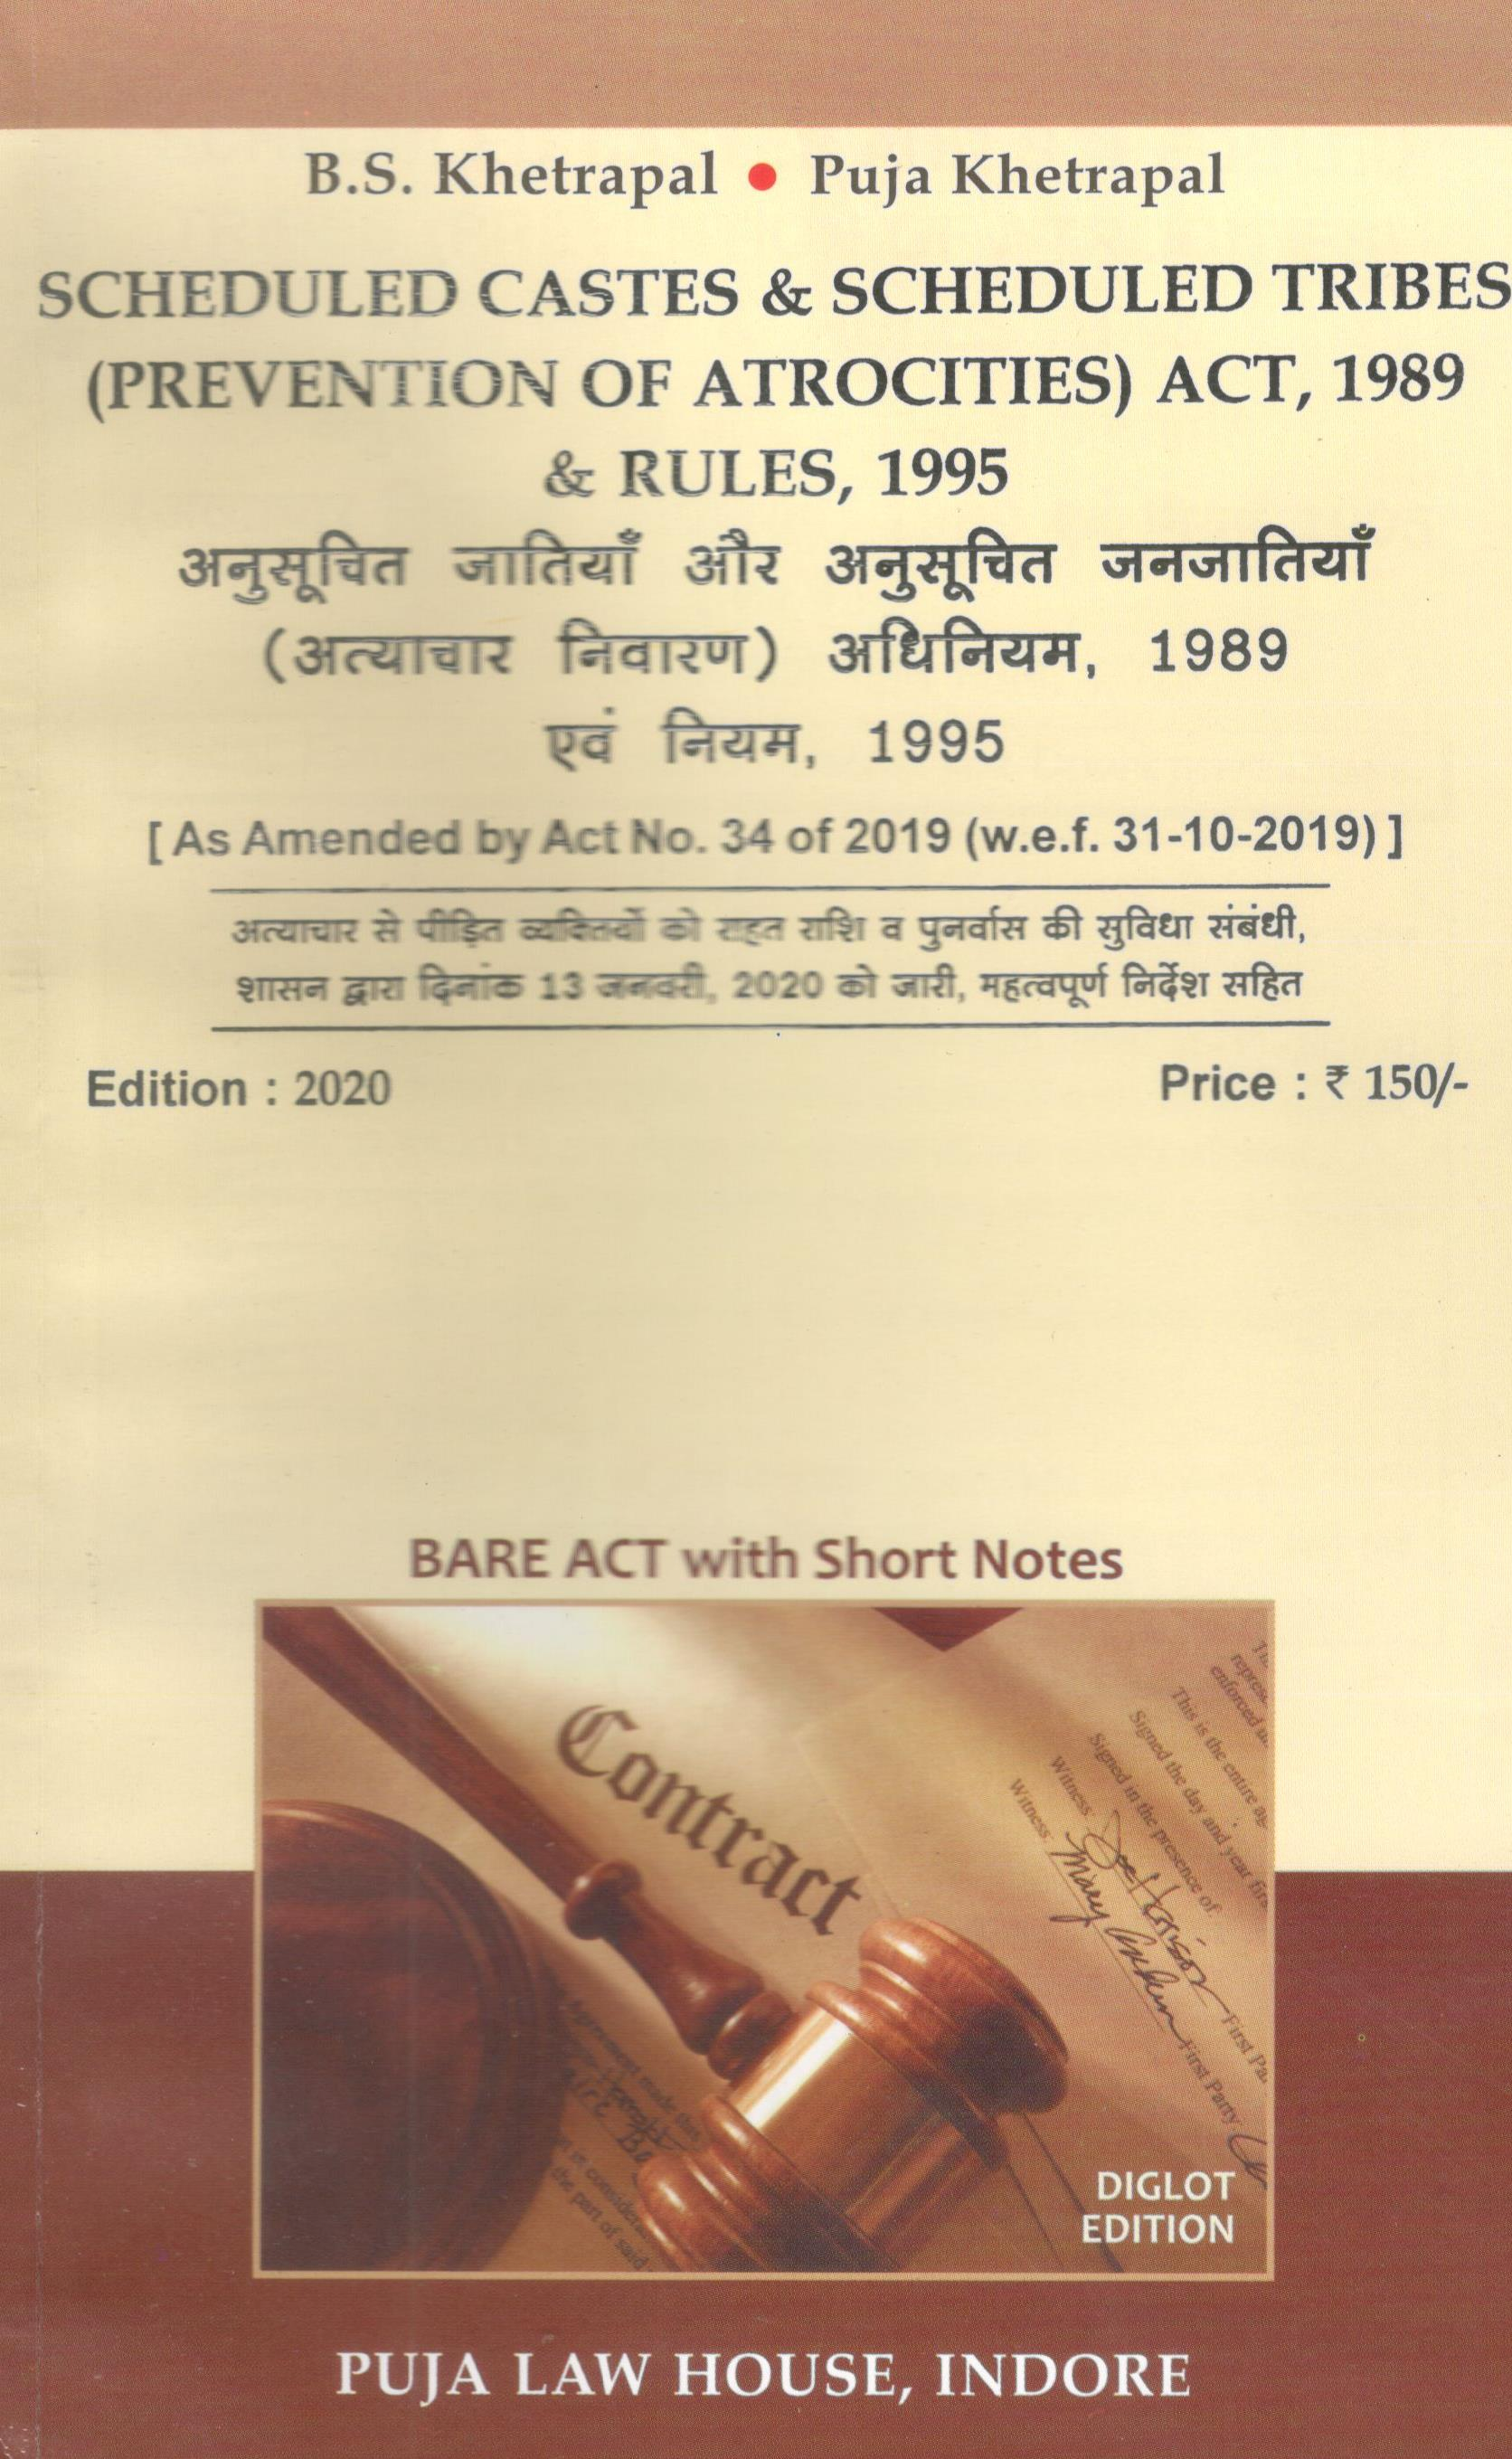 अनुसूचित जाति और अनुसूचित जनजाति (अत्याचार निवारण), 1989 और नियम, 1995 (अनुसूचित जाति, अनुसूचित जनजाति और विशेष न्यायालयों की सूची के साथ) / Scheduled Caste and Scheduled Tribes (Prevention of attrocities), 1989 and Rules, 1995